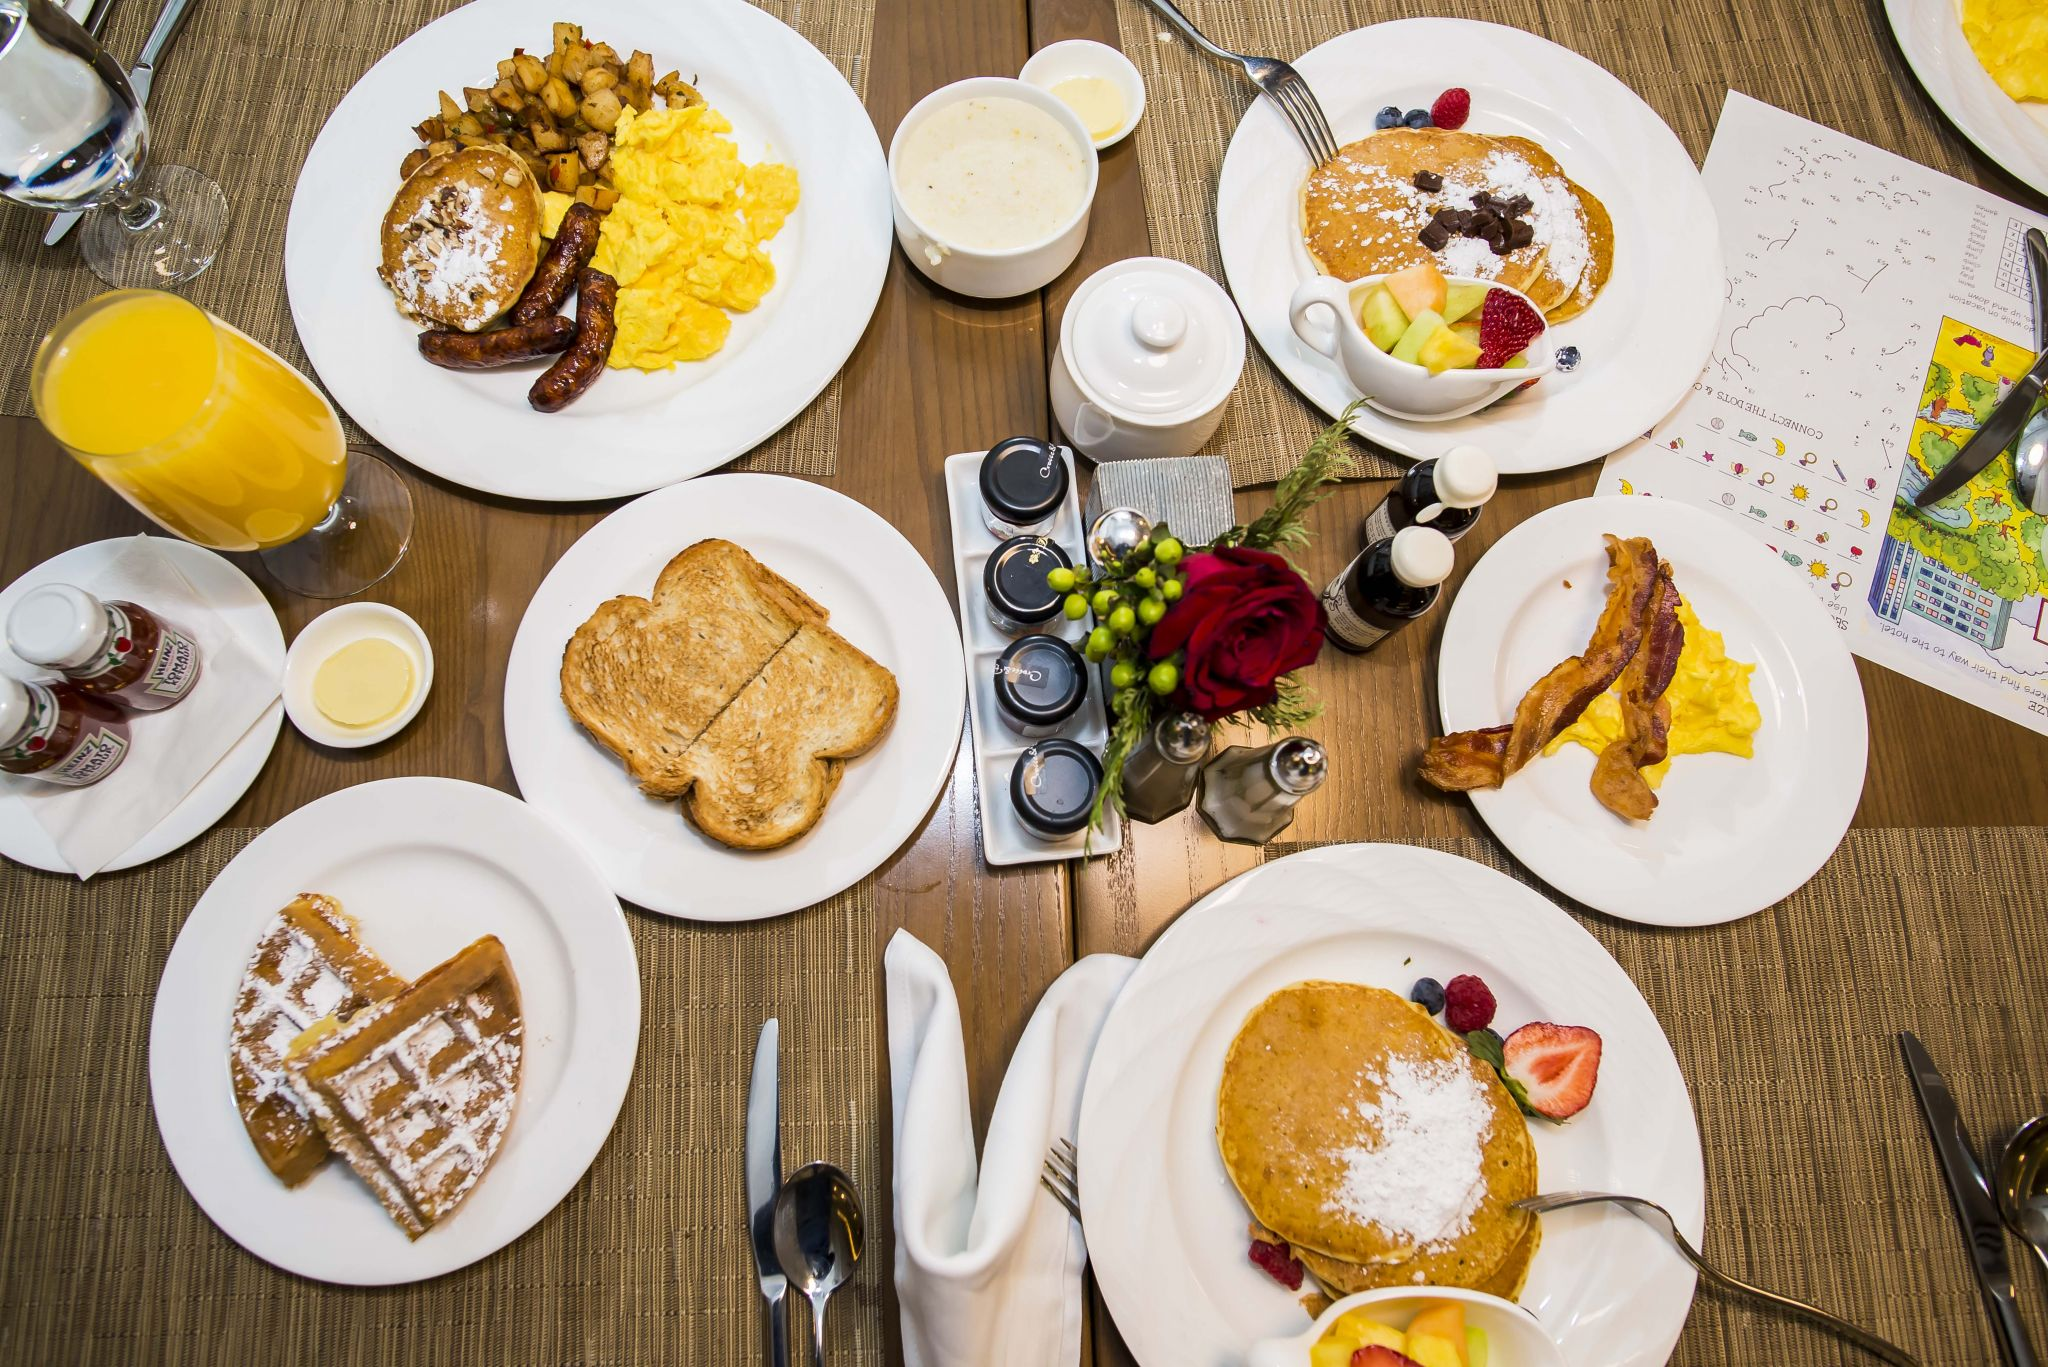 Breakfast at the whitley hotel